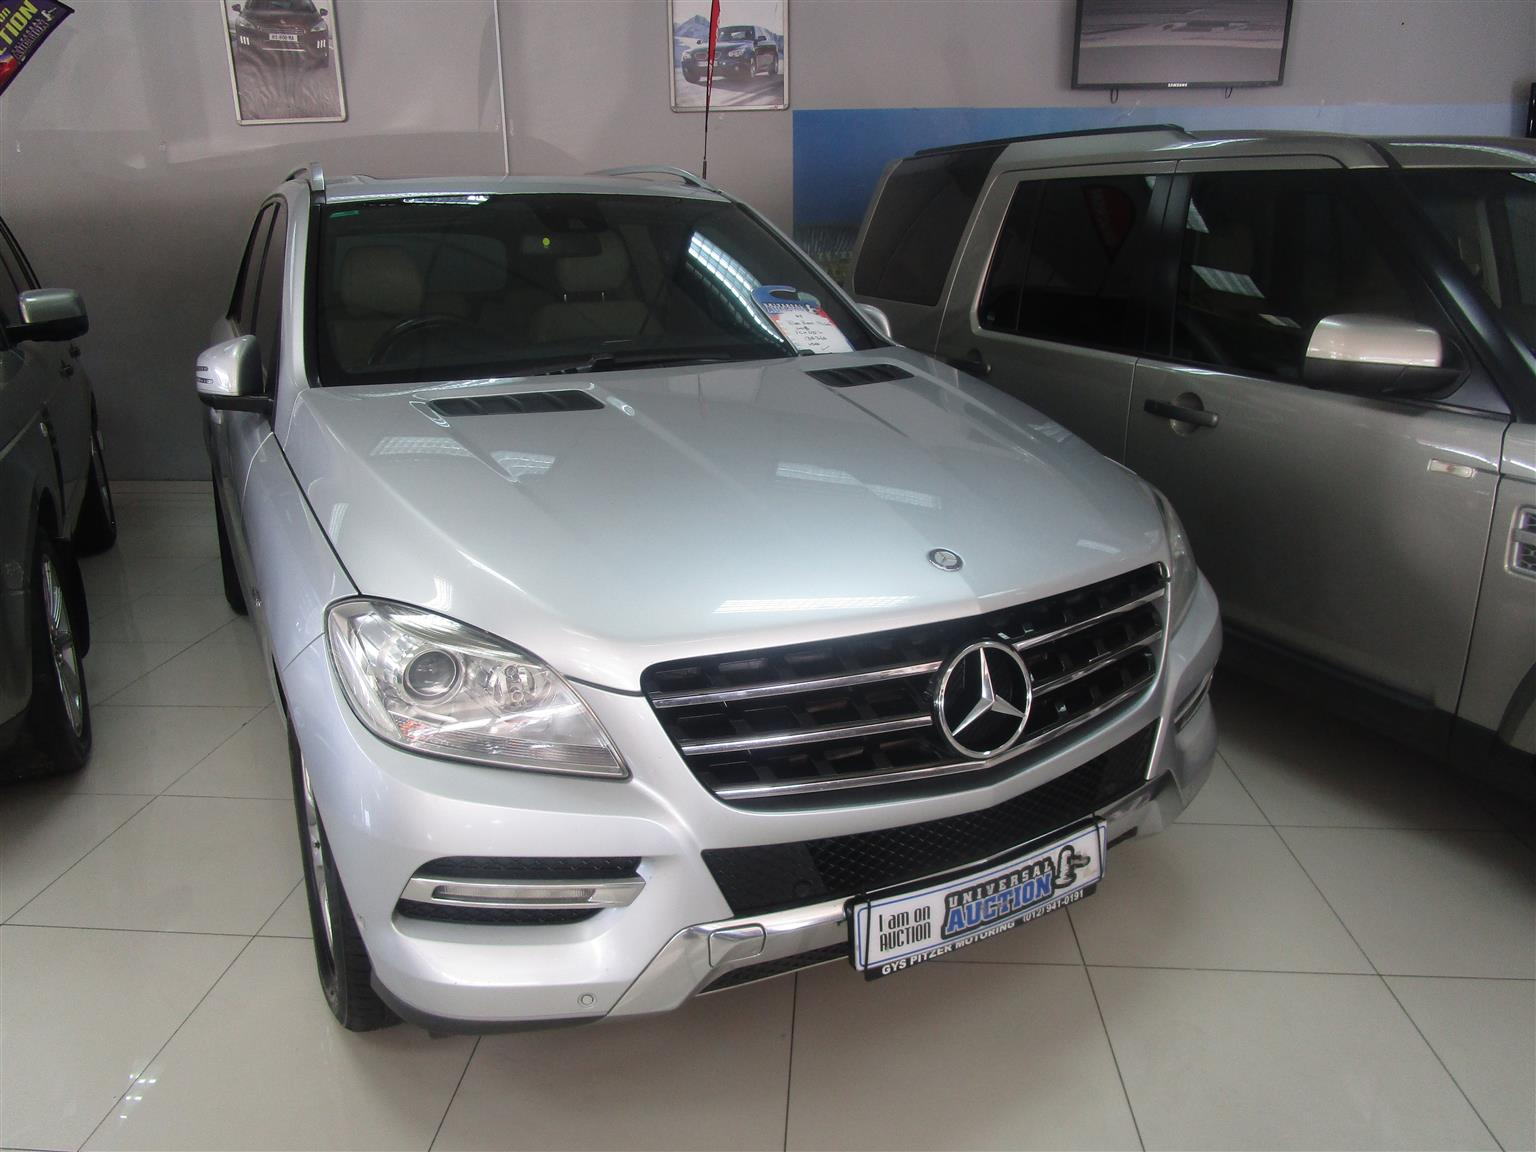 2012 Mercedes Benz ML 250 BlueTec